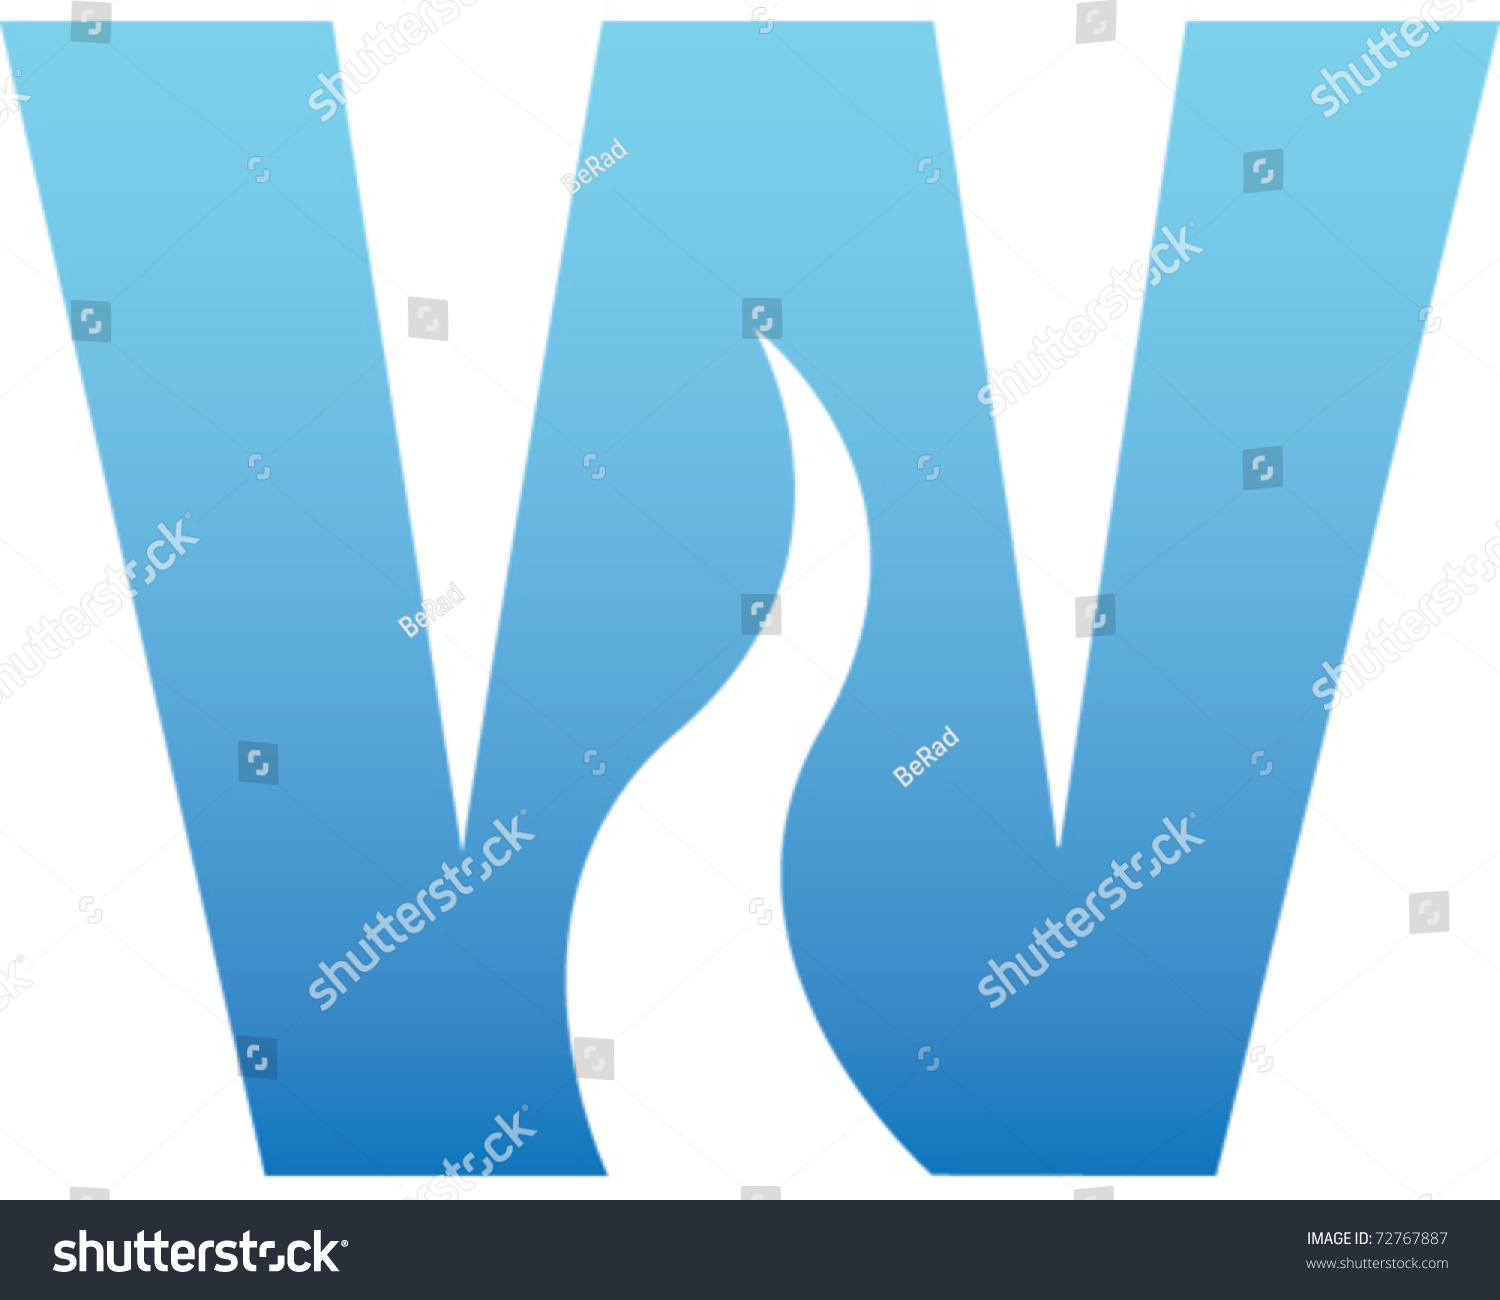 Water Letter Stock Vector Illustration 72767887 : Shutterstock